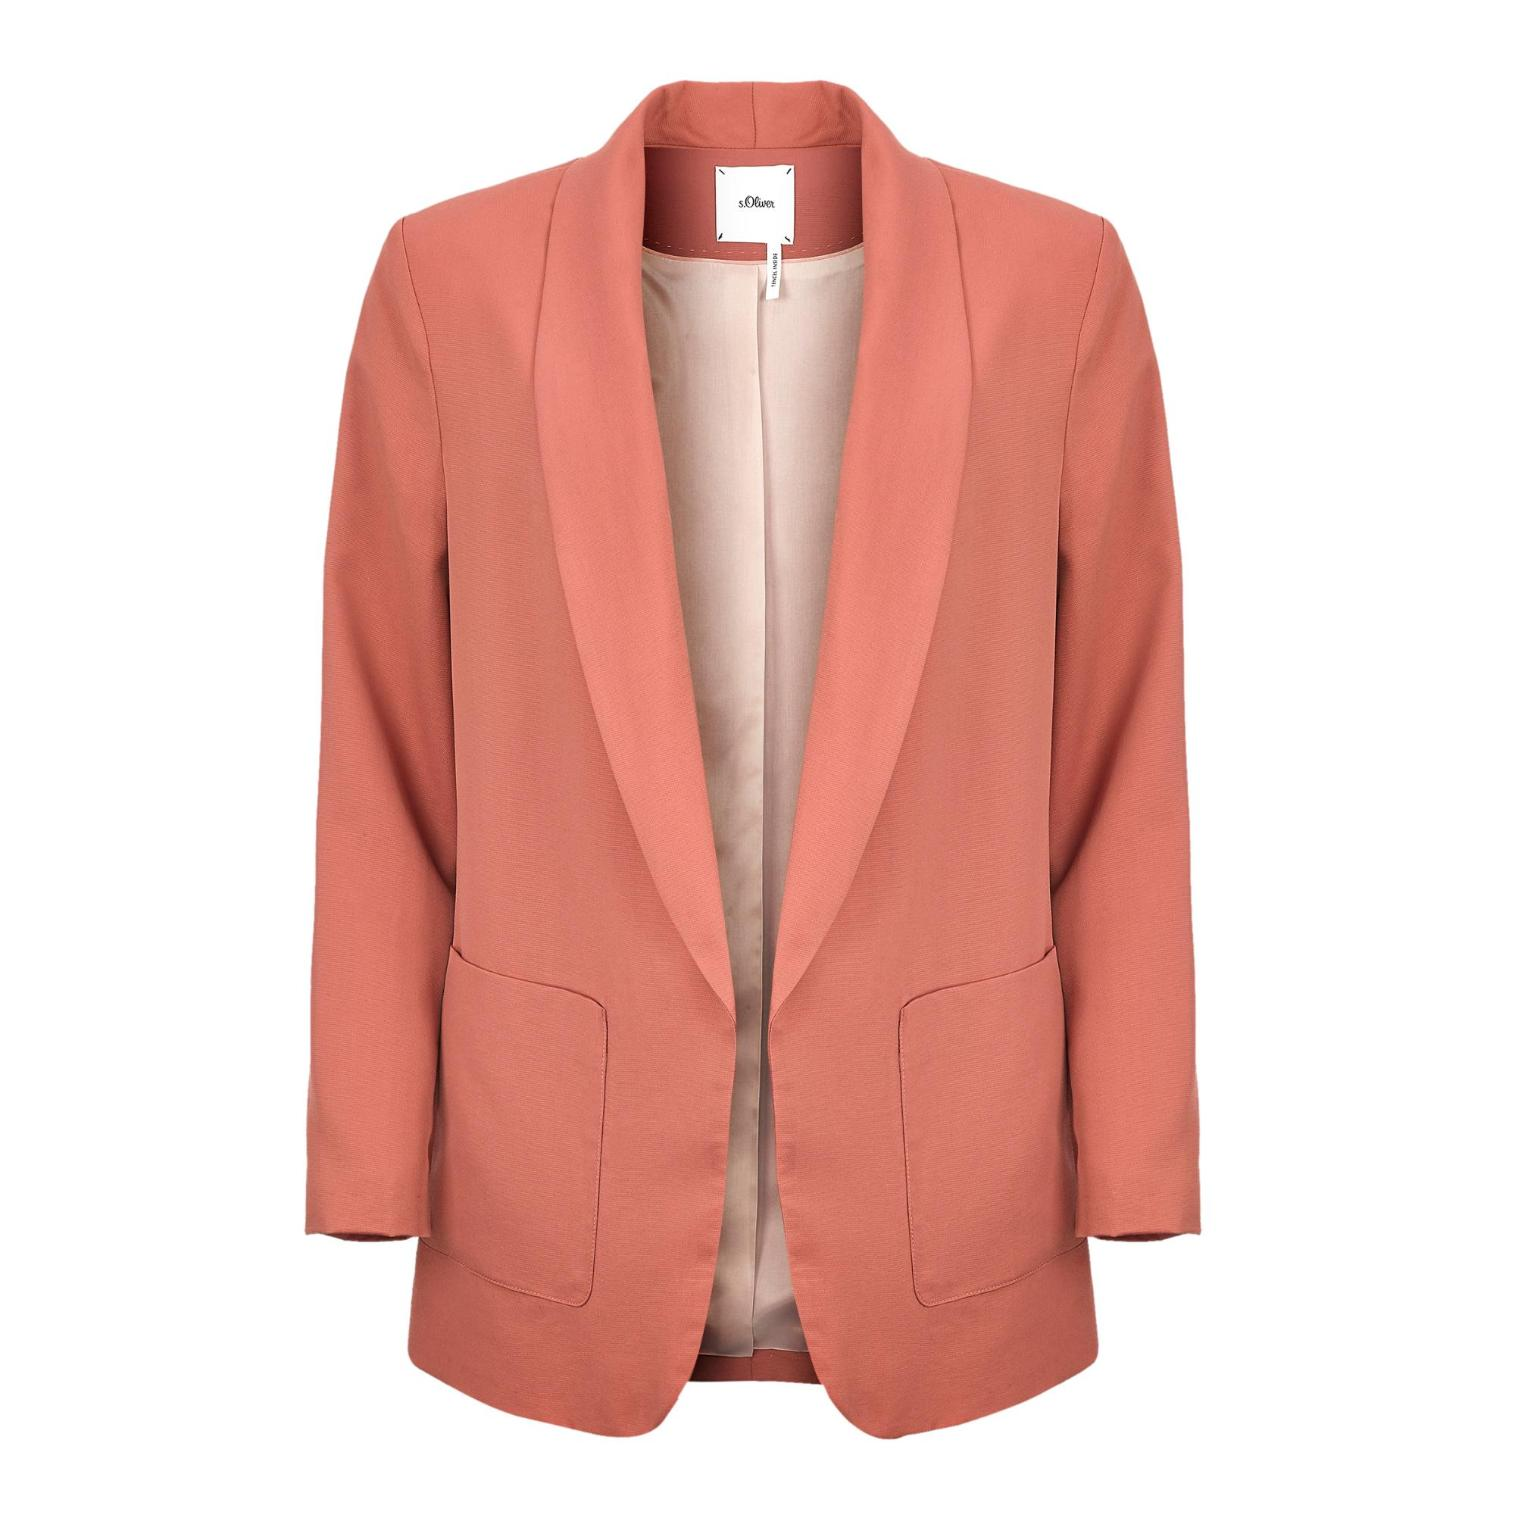 s.oliver black label -  Blazer - Damen - rosa